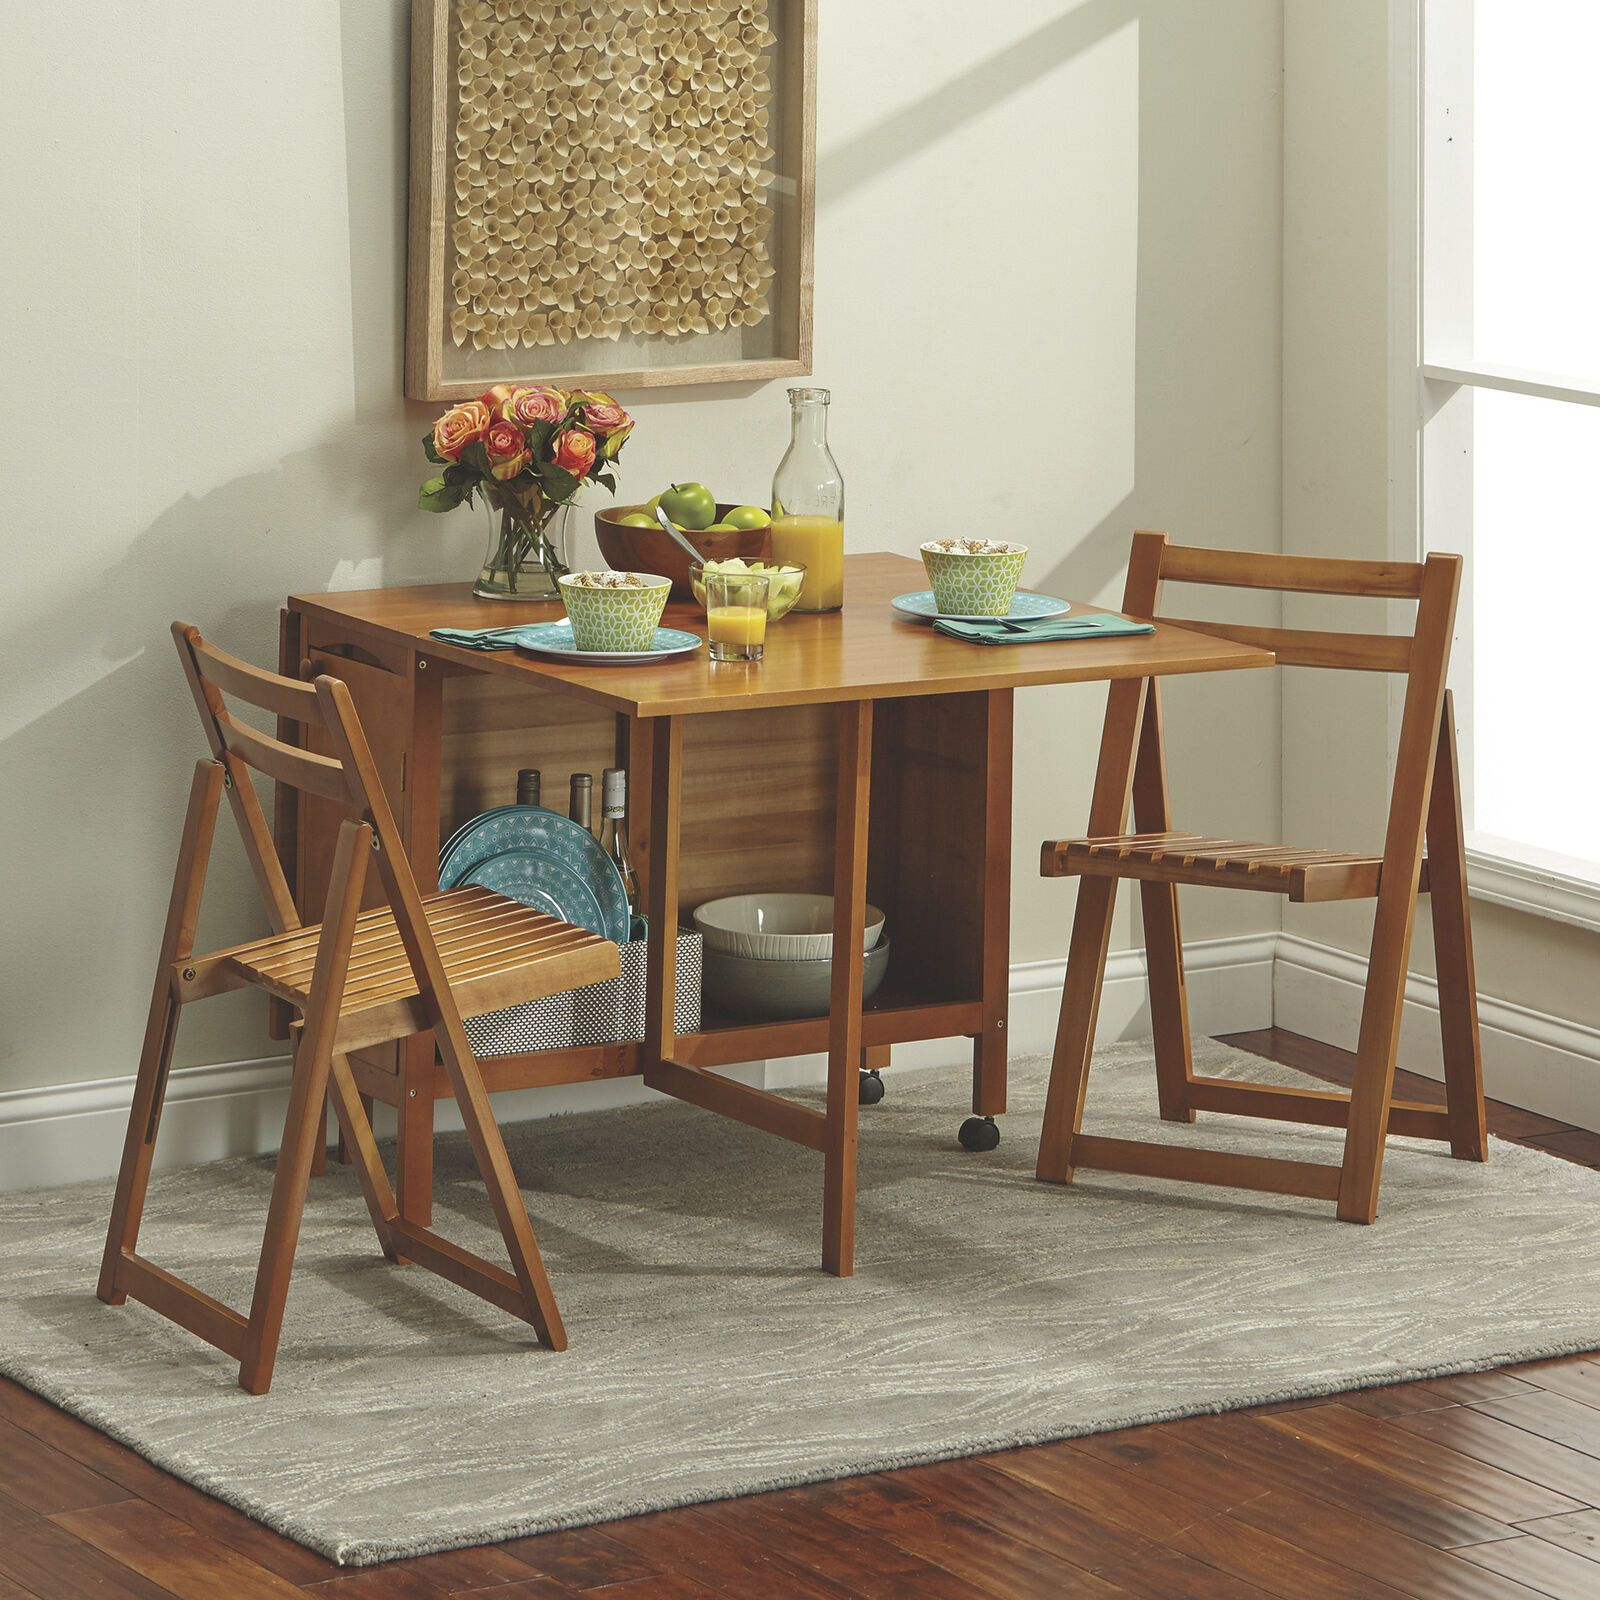 Details About 5 Pc Space Saving Foldable Portable Dining Set 1